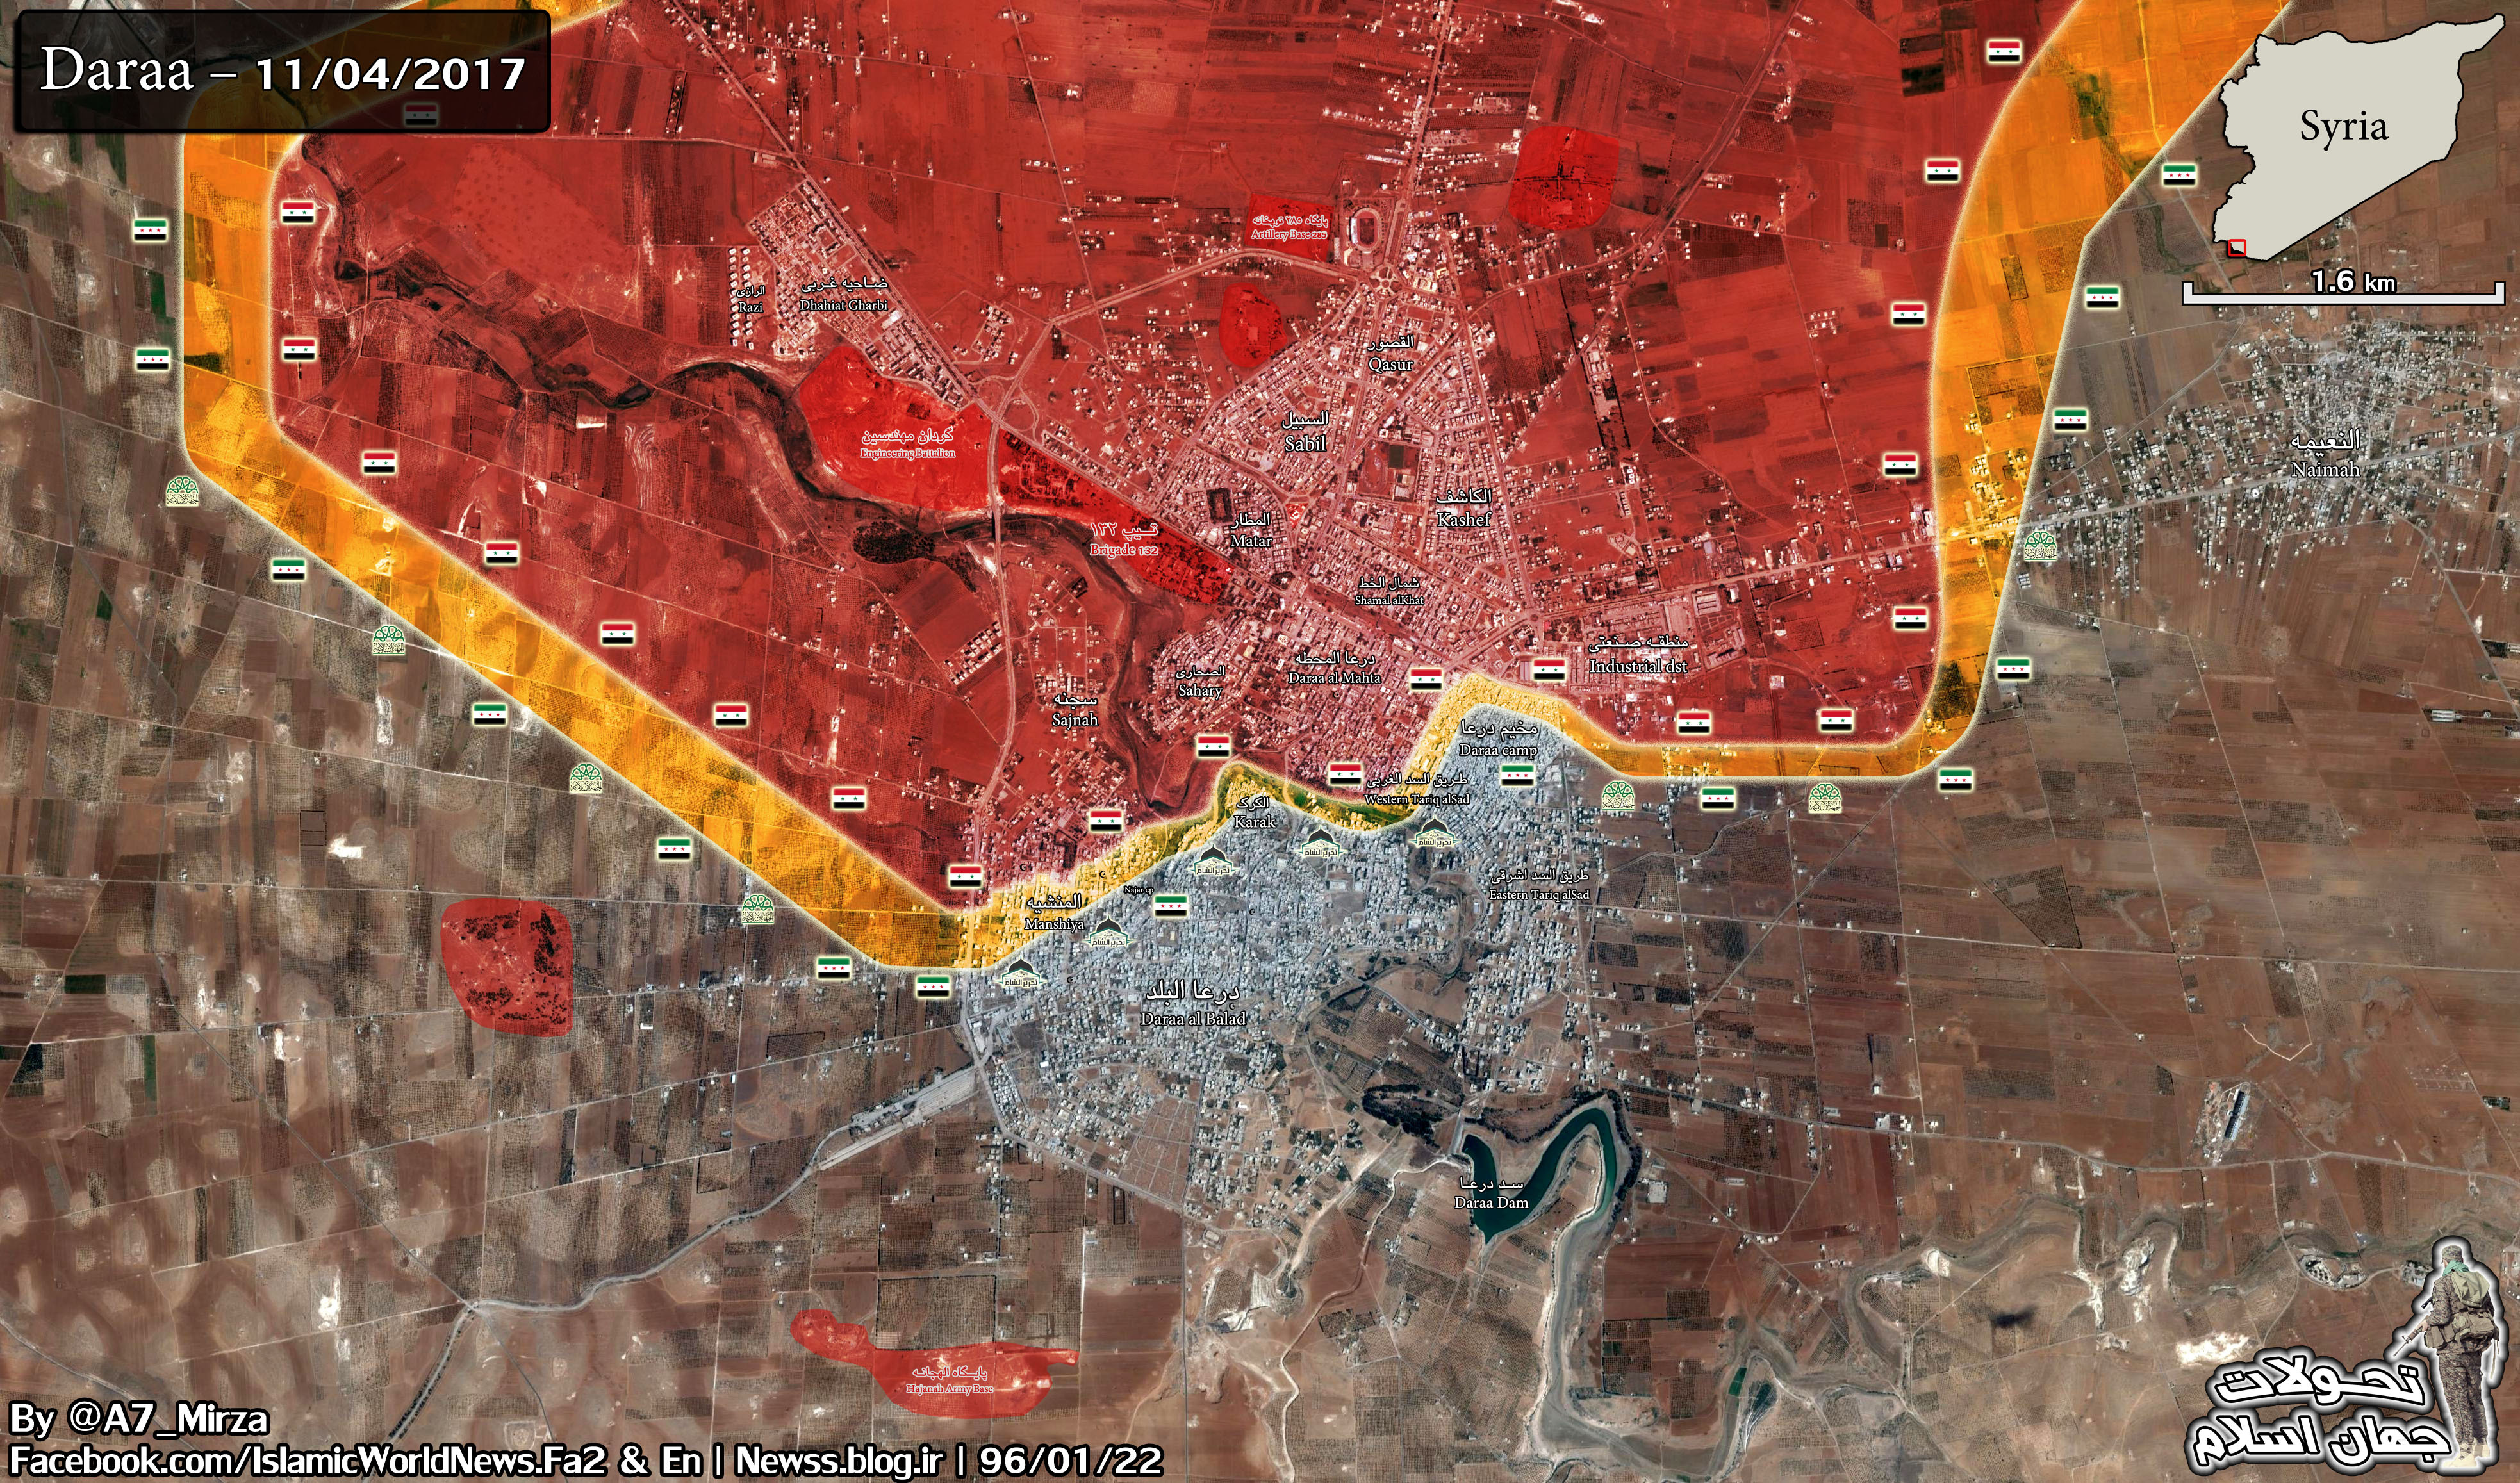 Military Situation In Syria's Daraa On April 11, 2017 (Map)